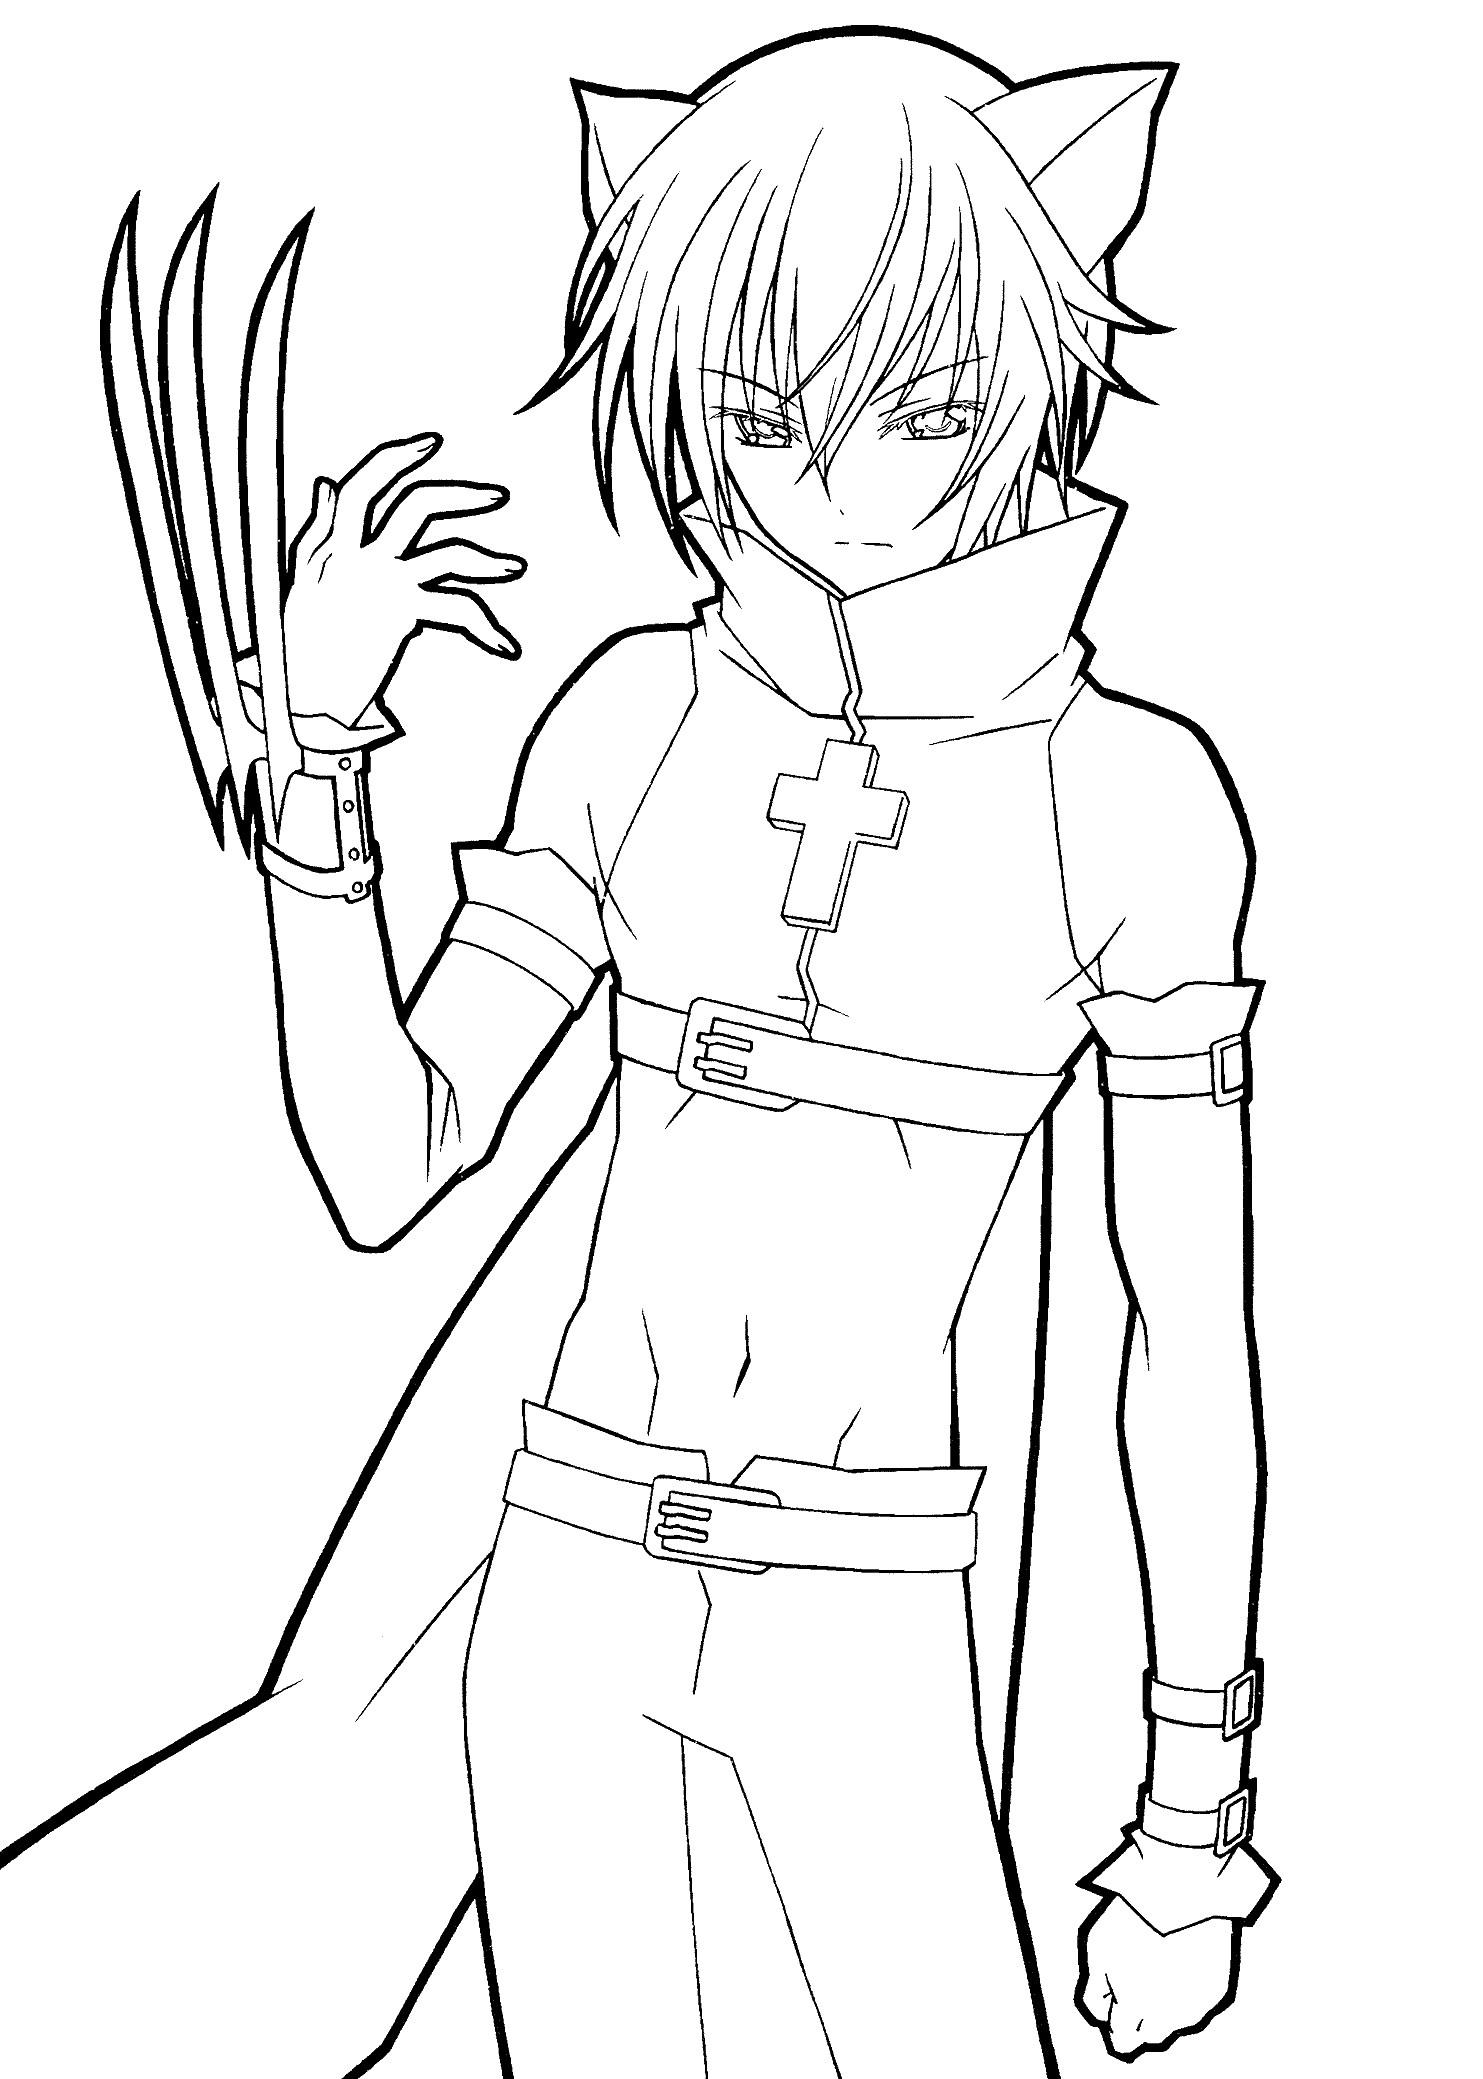 anime colour in anime coloring pages best coloring pages for kids anime colour in 1 1